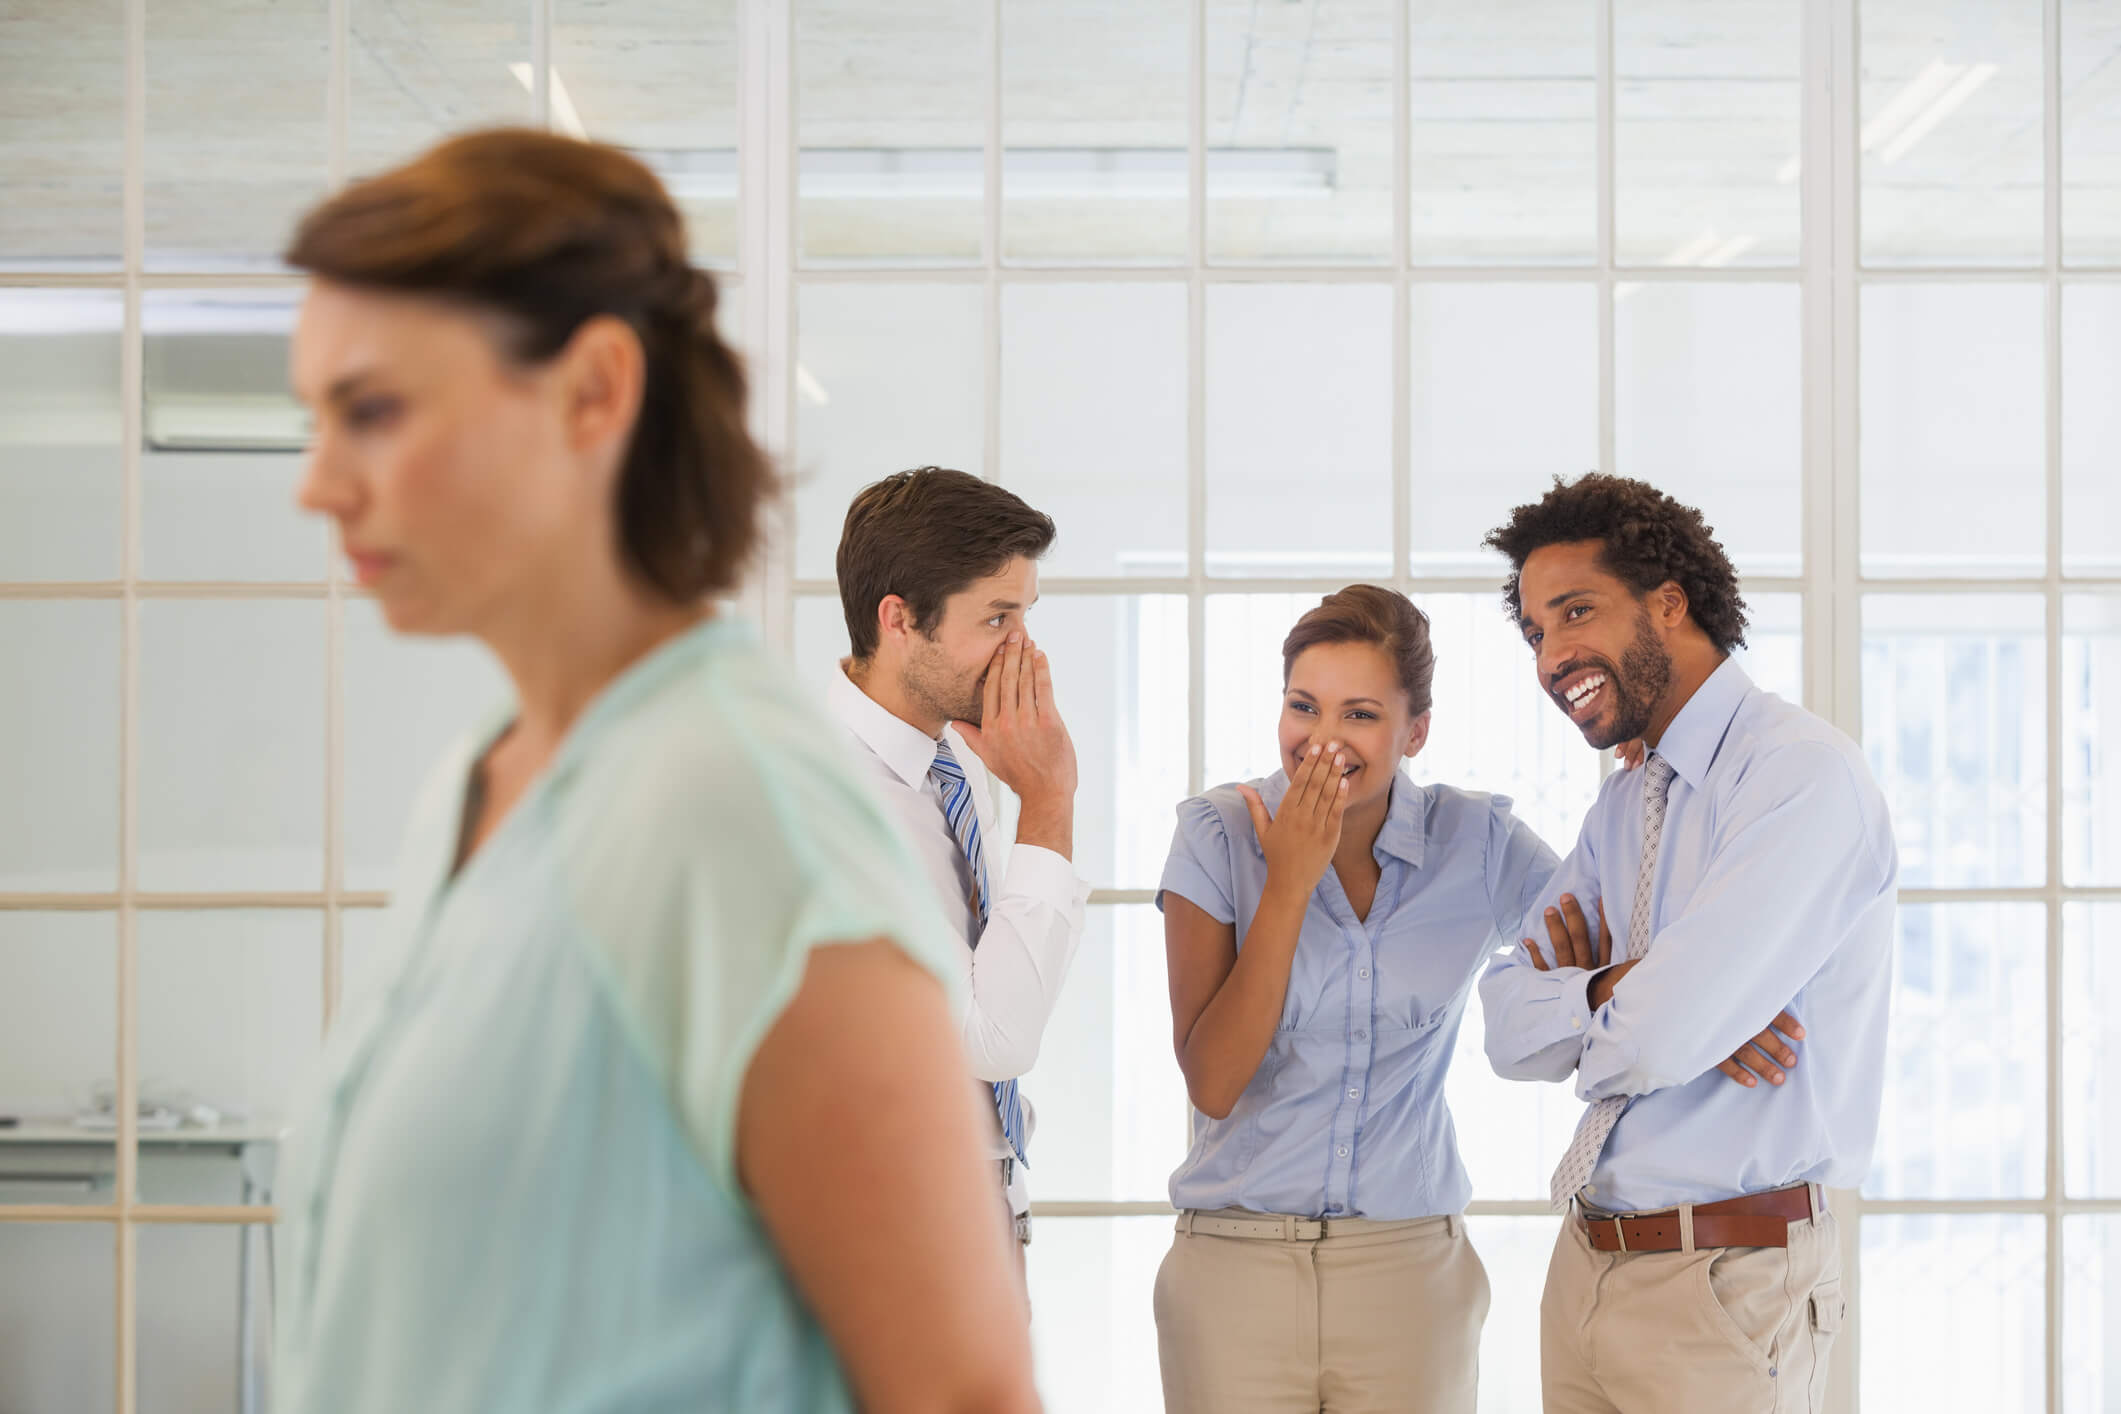 Investigating Workplace Bullying Allegations: 10 Tips for Success   i-Sight